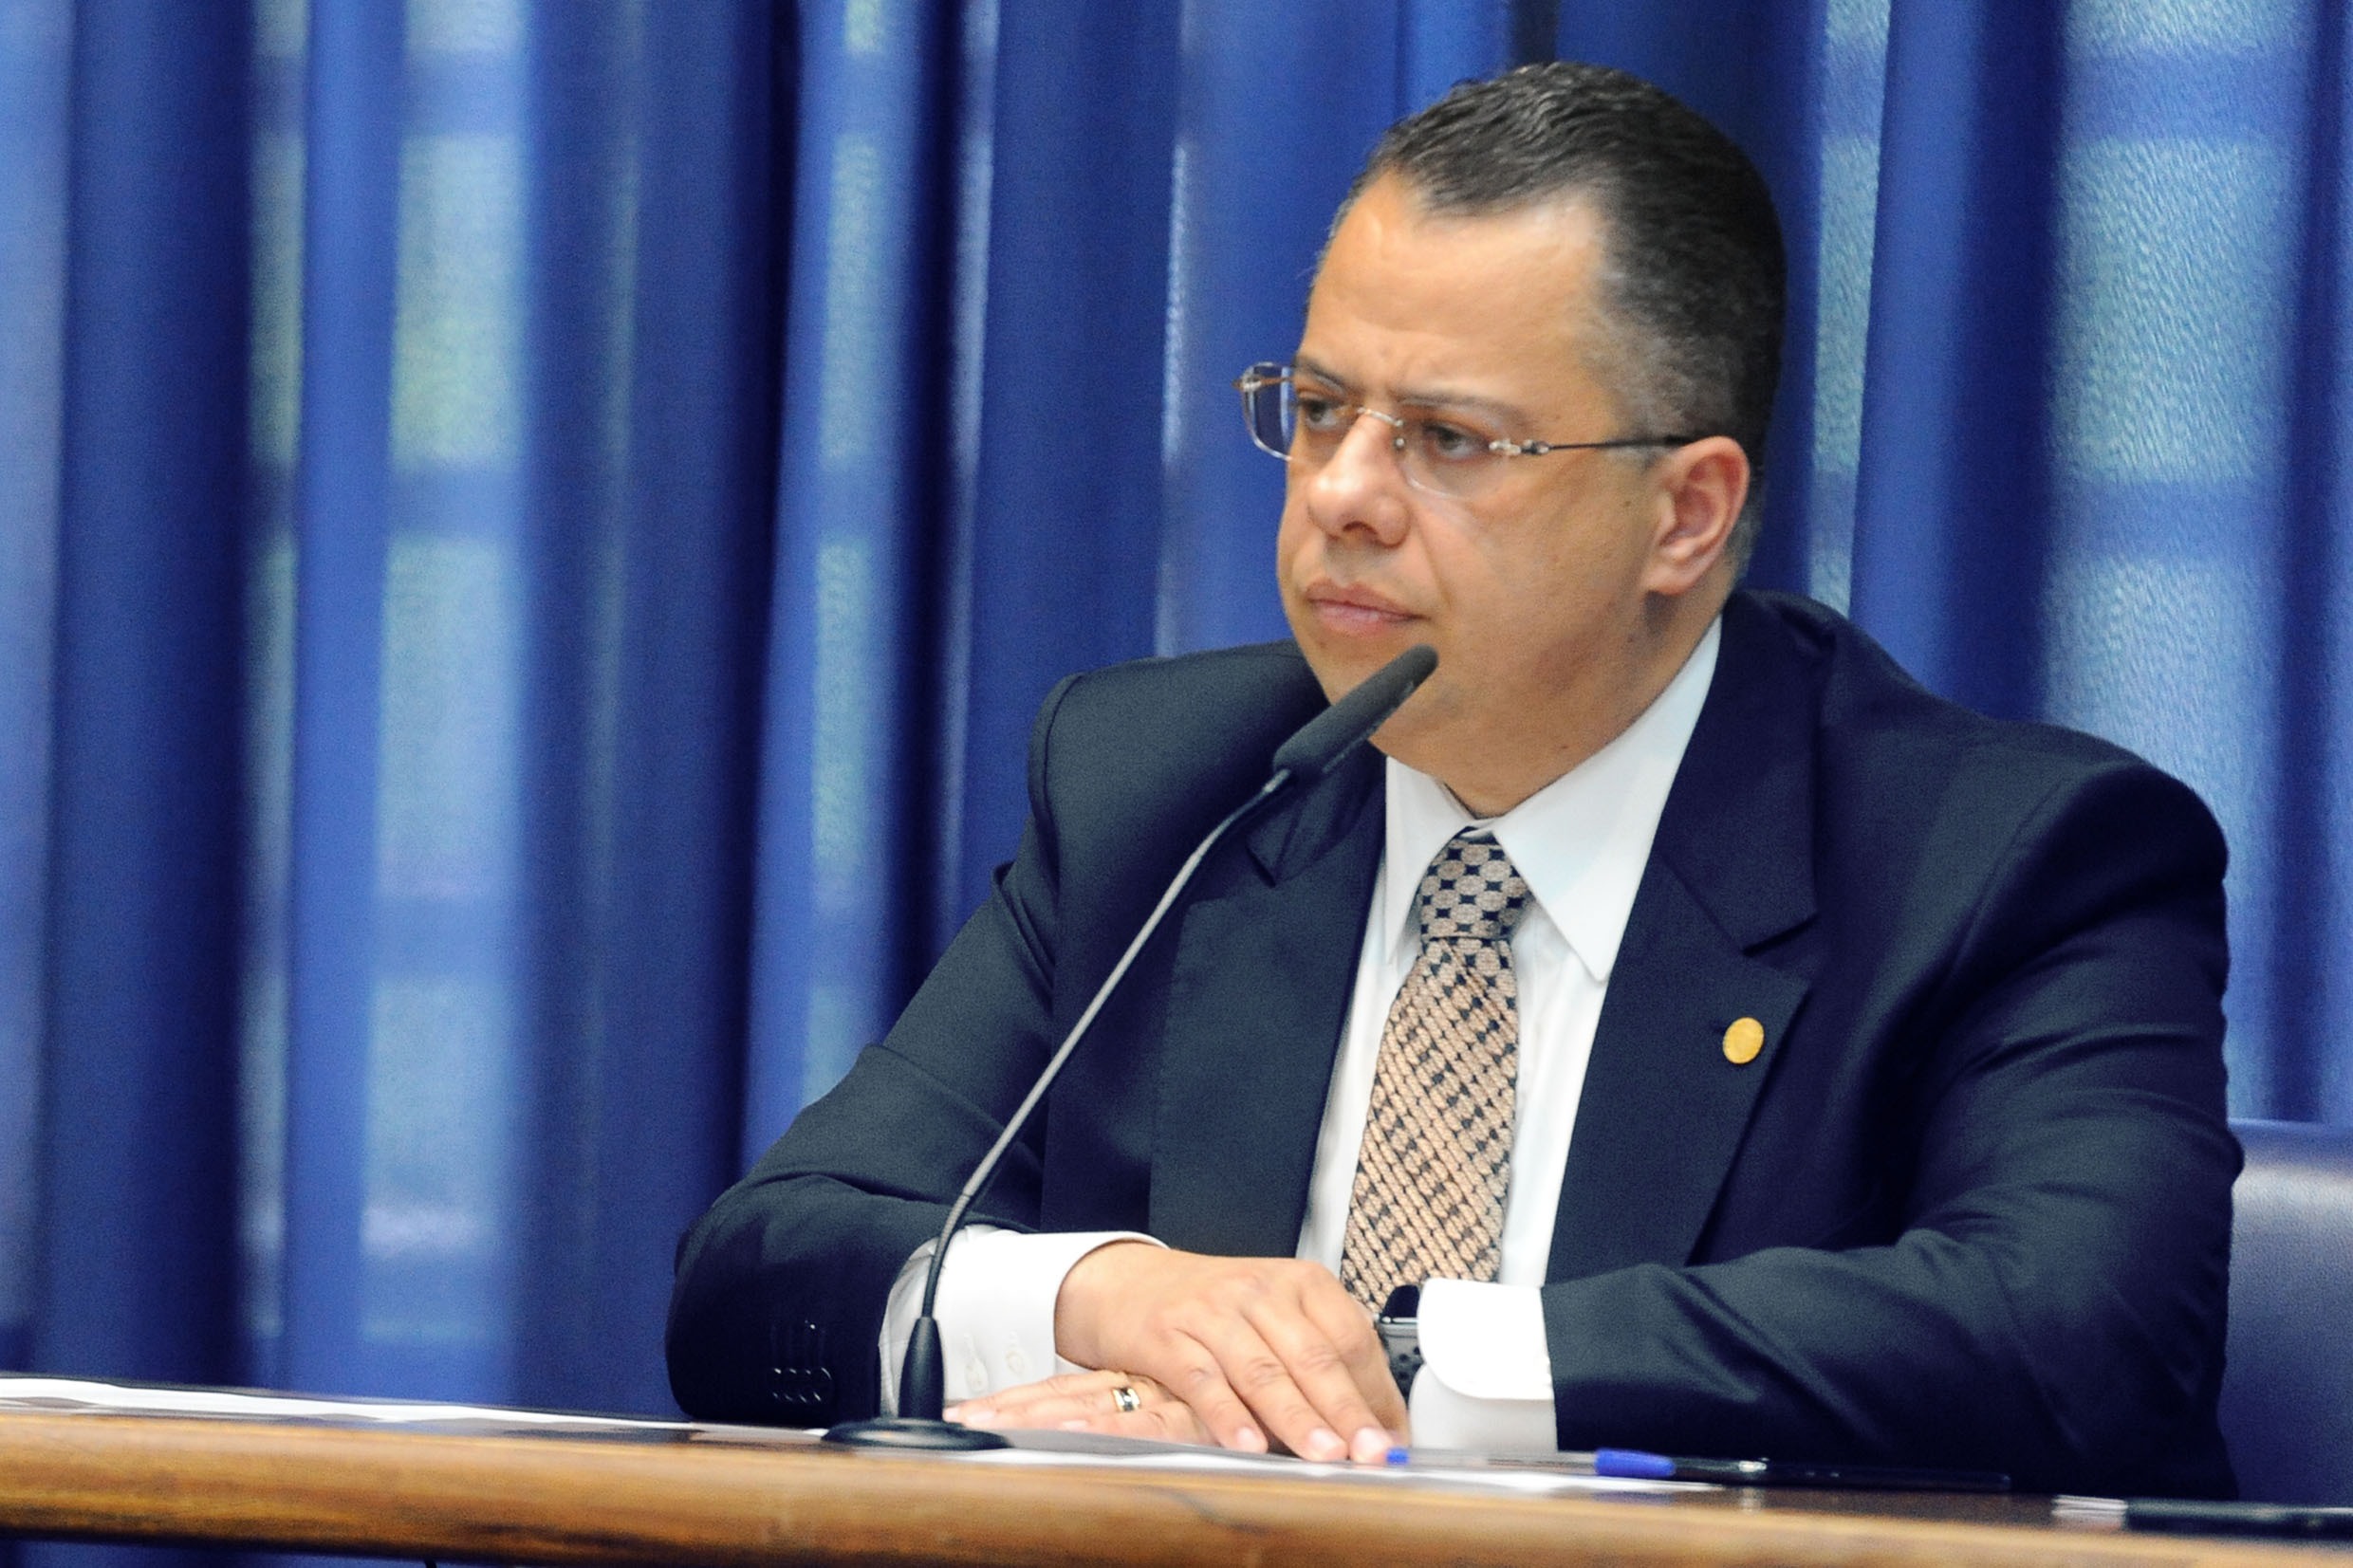 Wellington Moura <a style='float:right' href='https://www3.al.sp.gov.br/repositorio/noticia/N-12-2018/fg228298.jpg' target=_blank><img src='/_img/material-file-download-white.png' width='14px' alt='Clique para baixar a imagem'></a>